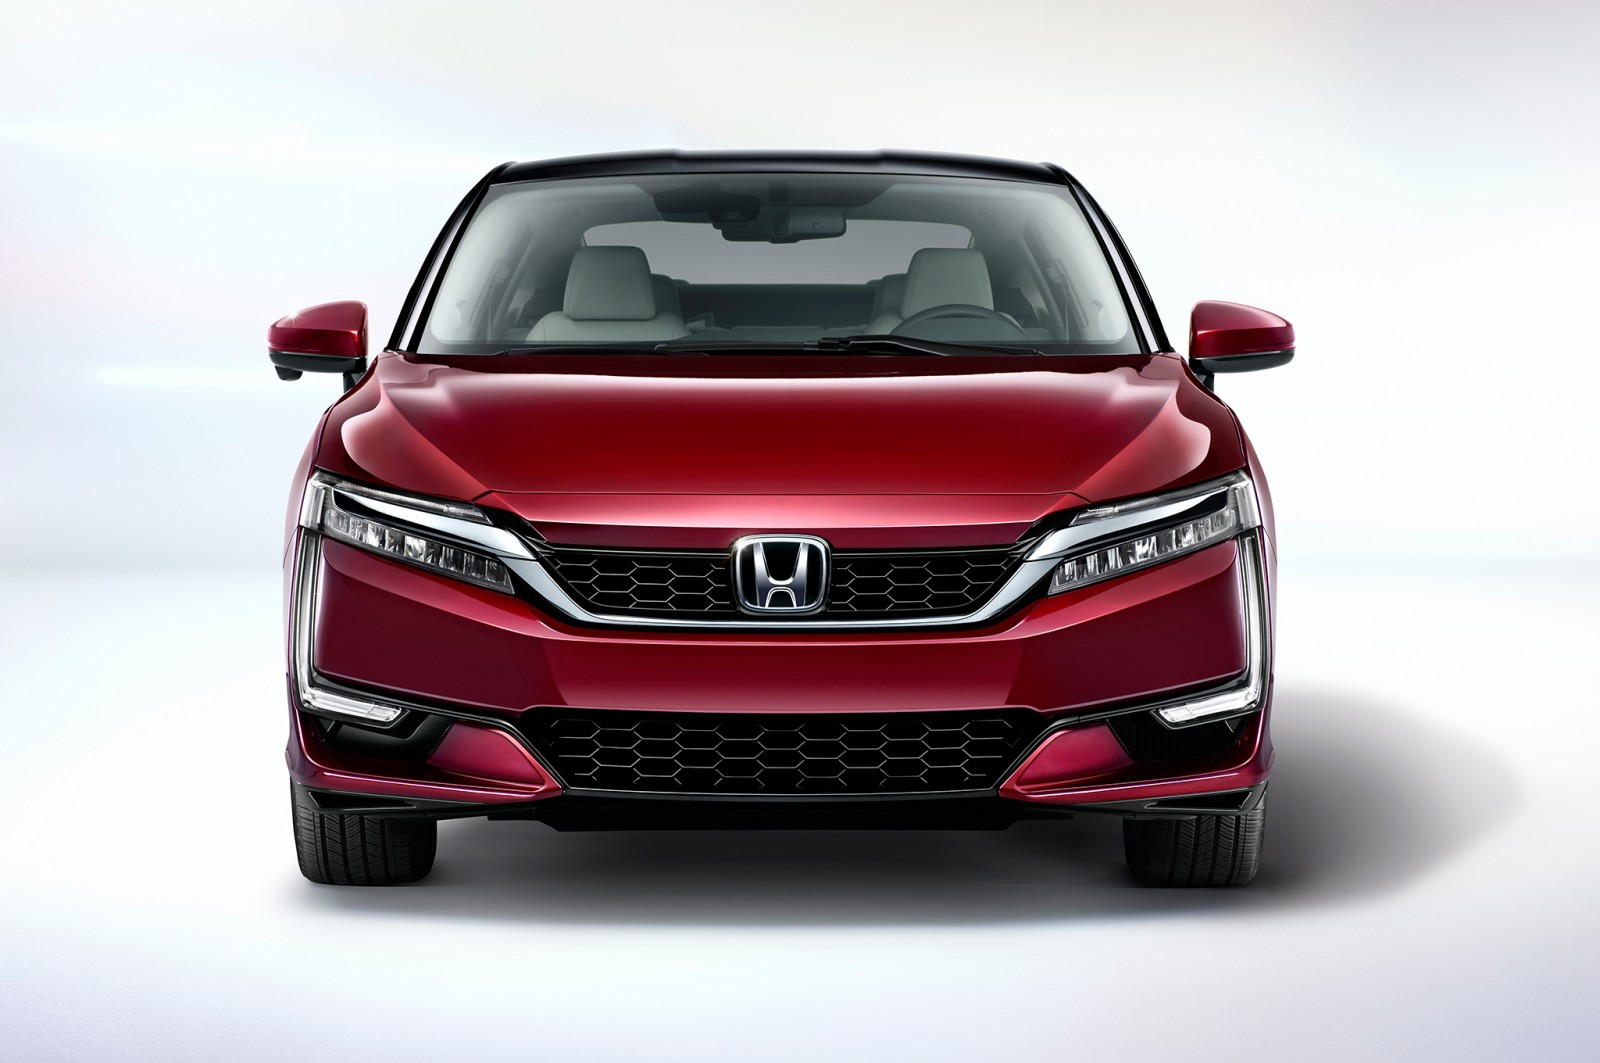 new honda vehicles coming as part of electrification initiative openroad auto group. Black Bedroom Furniture Sets. Home Design Ideas